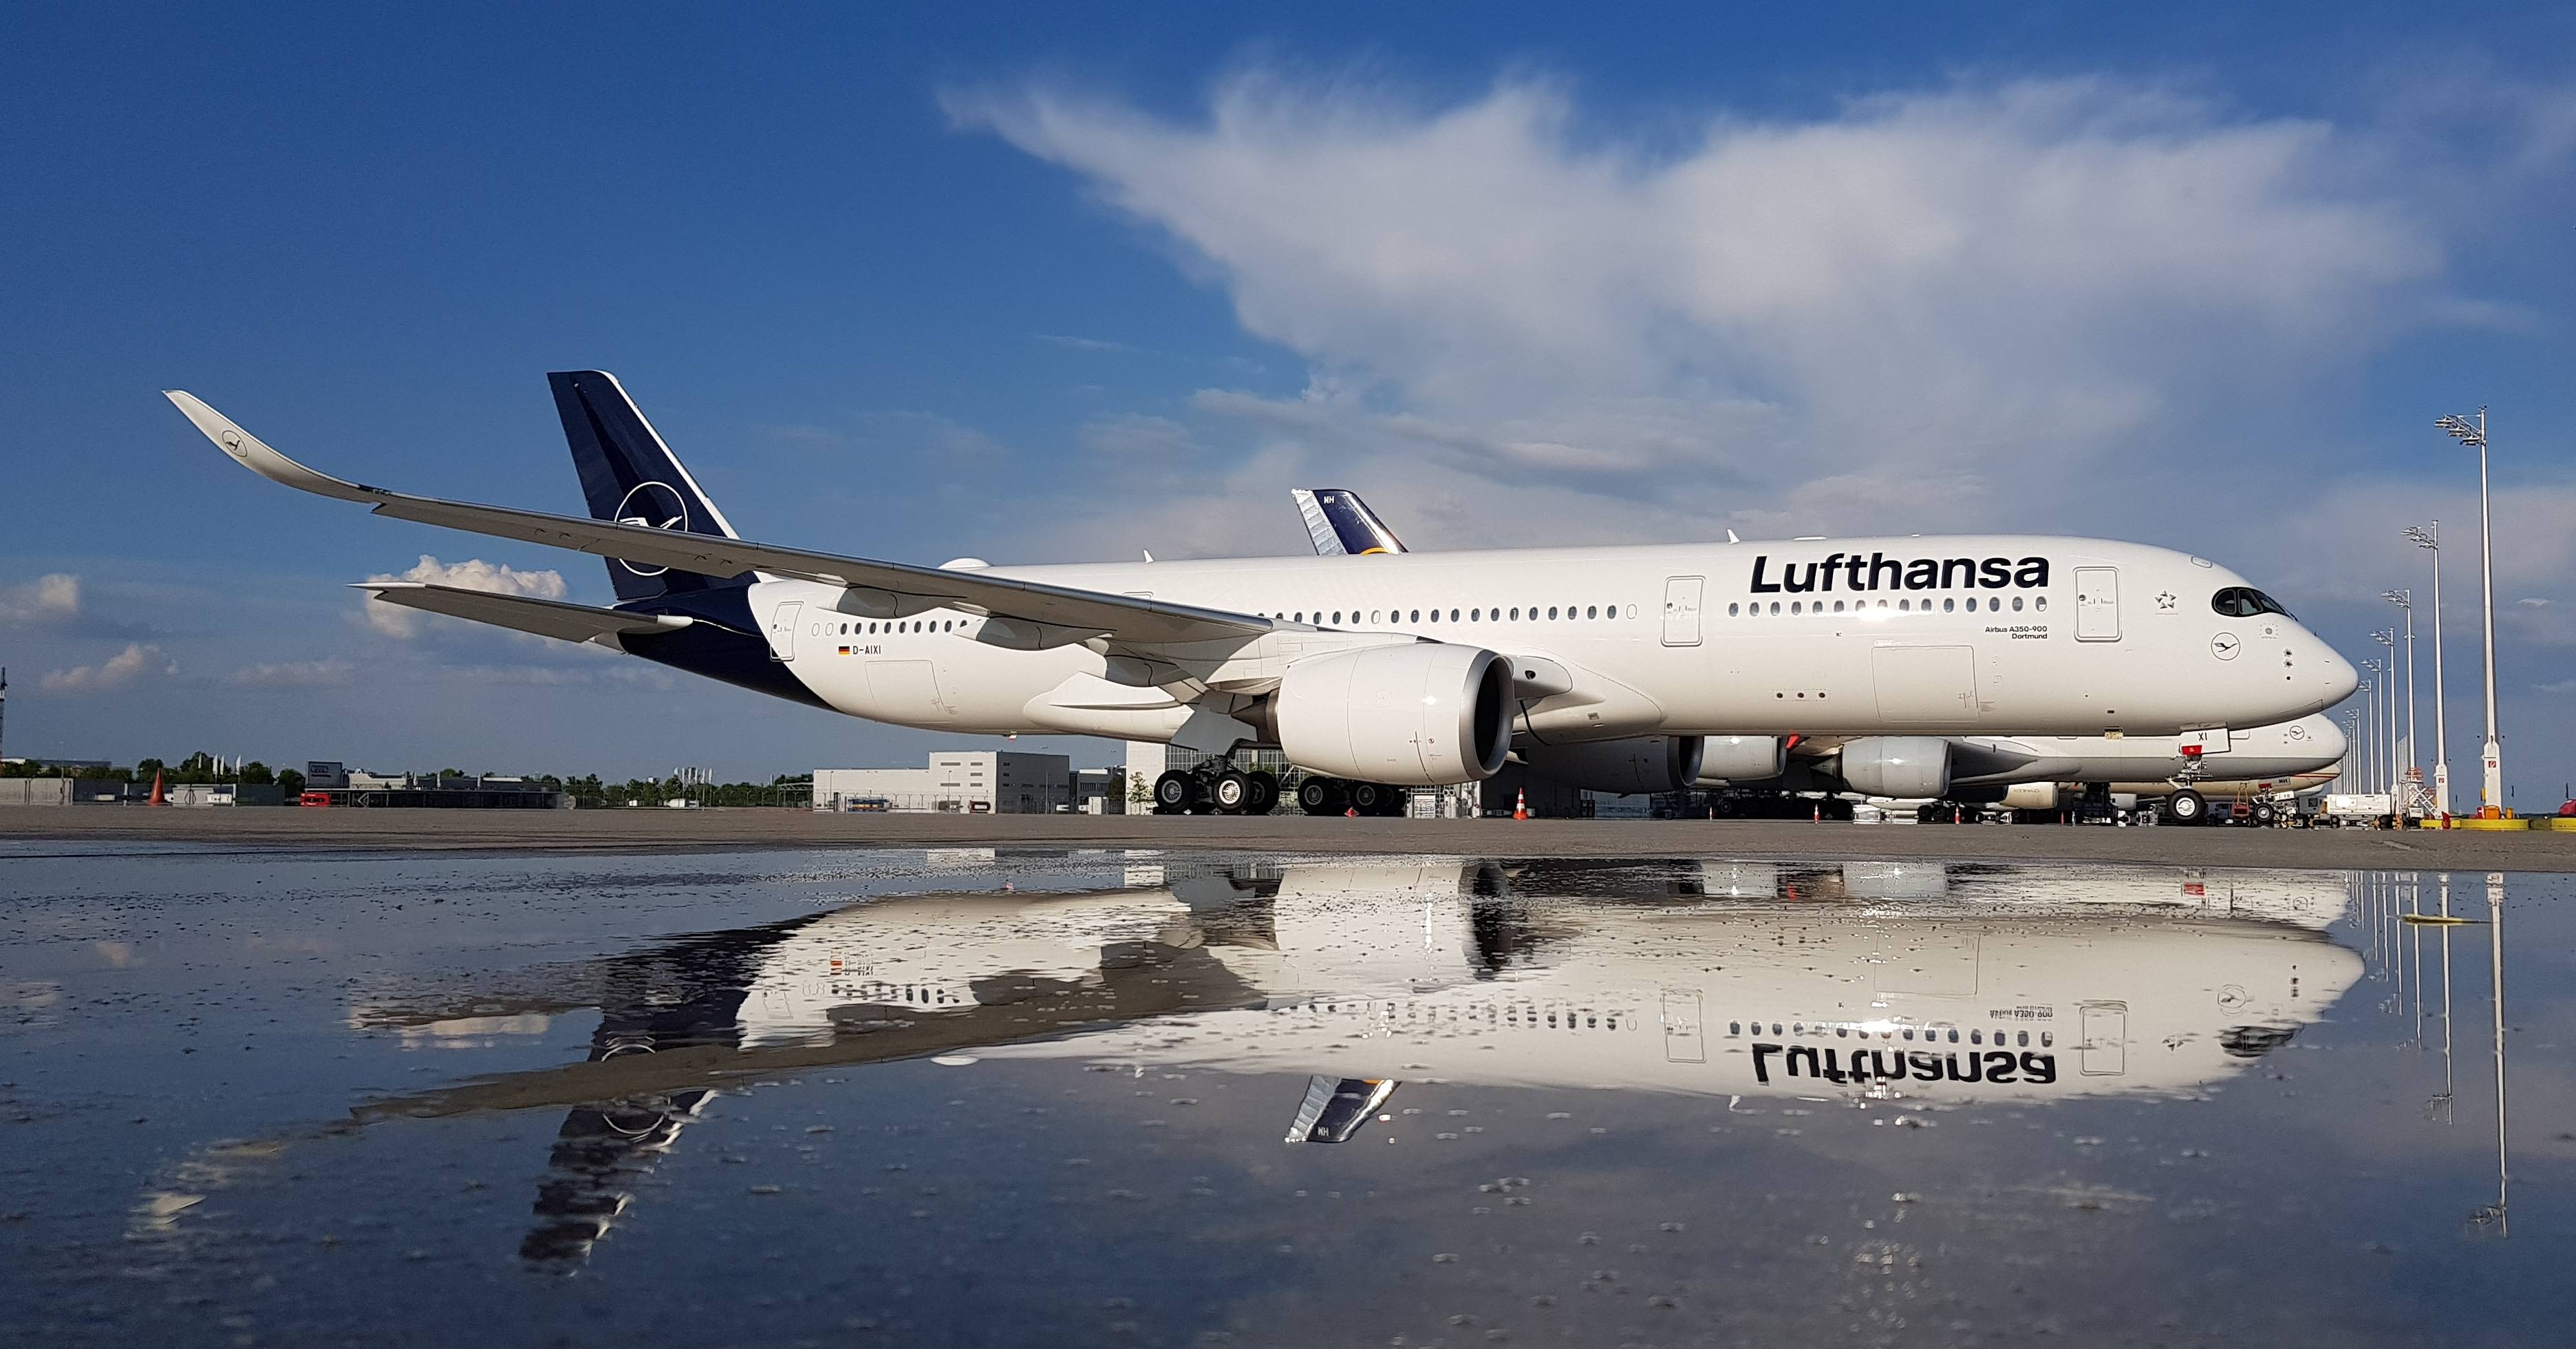 why lufthansa bought 787s